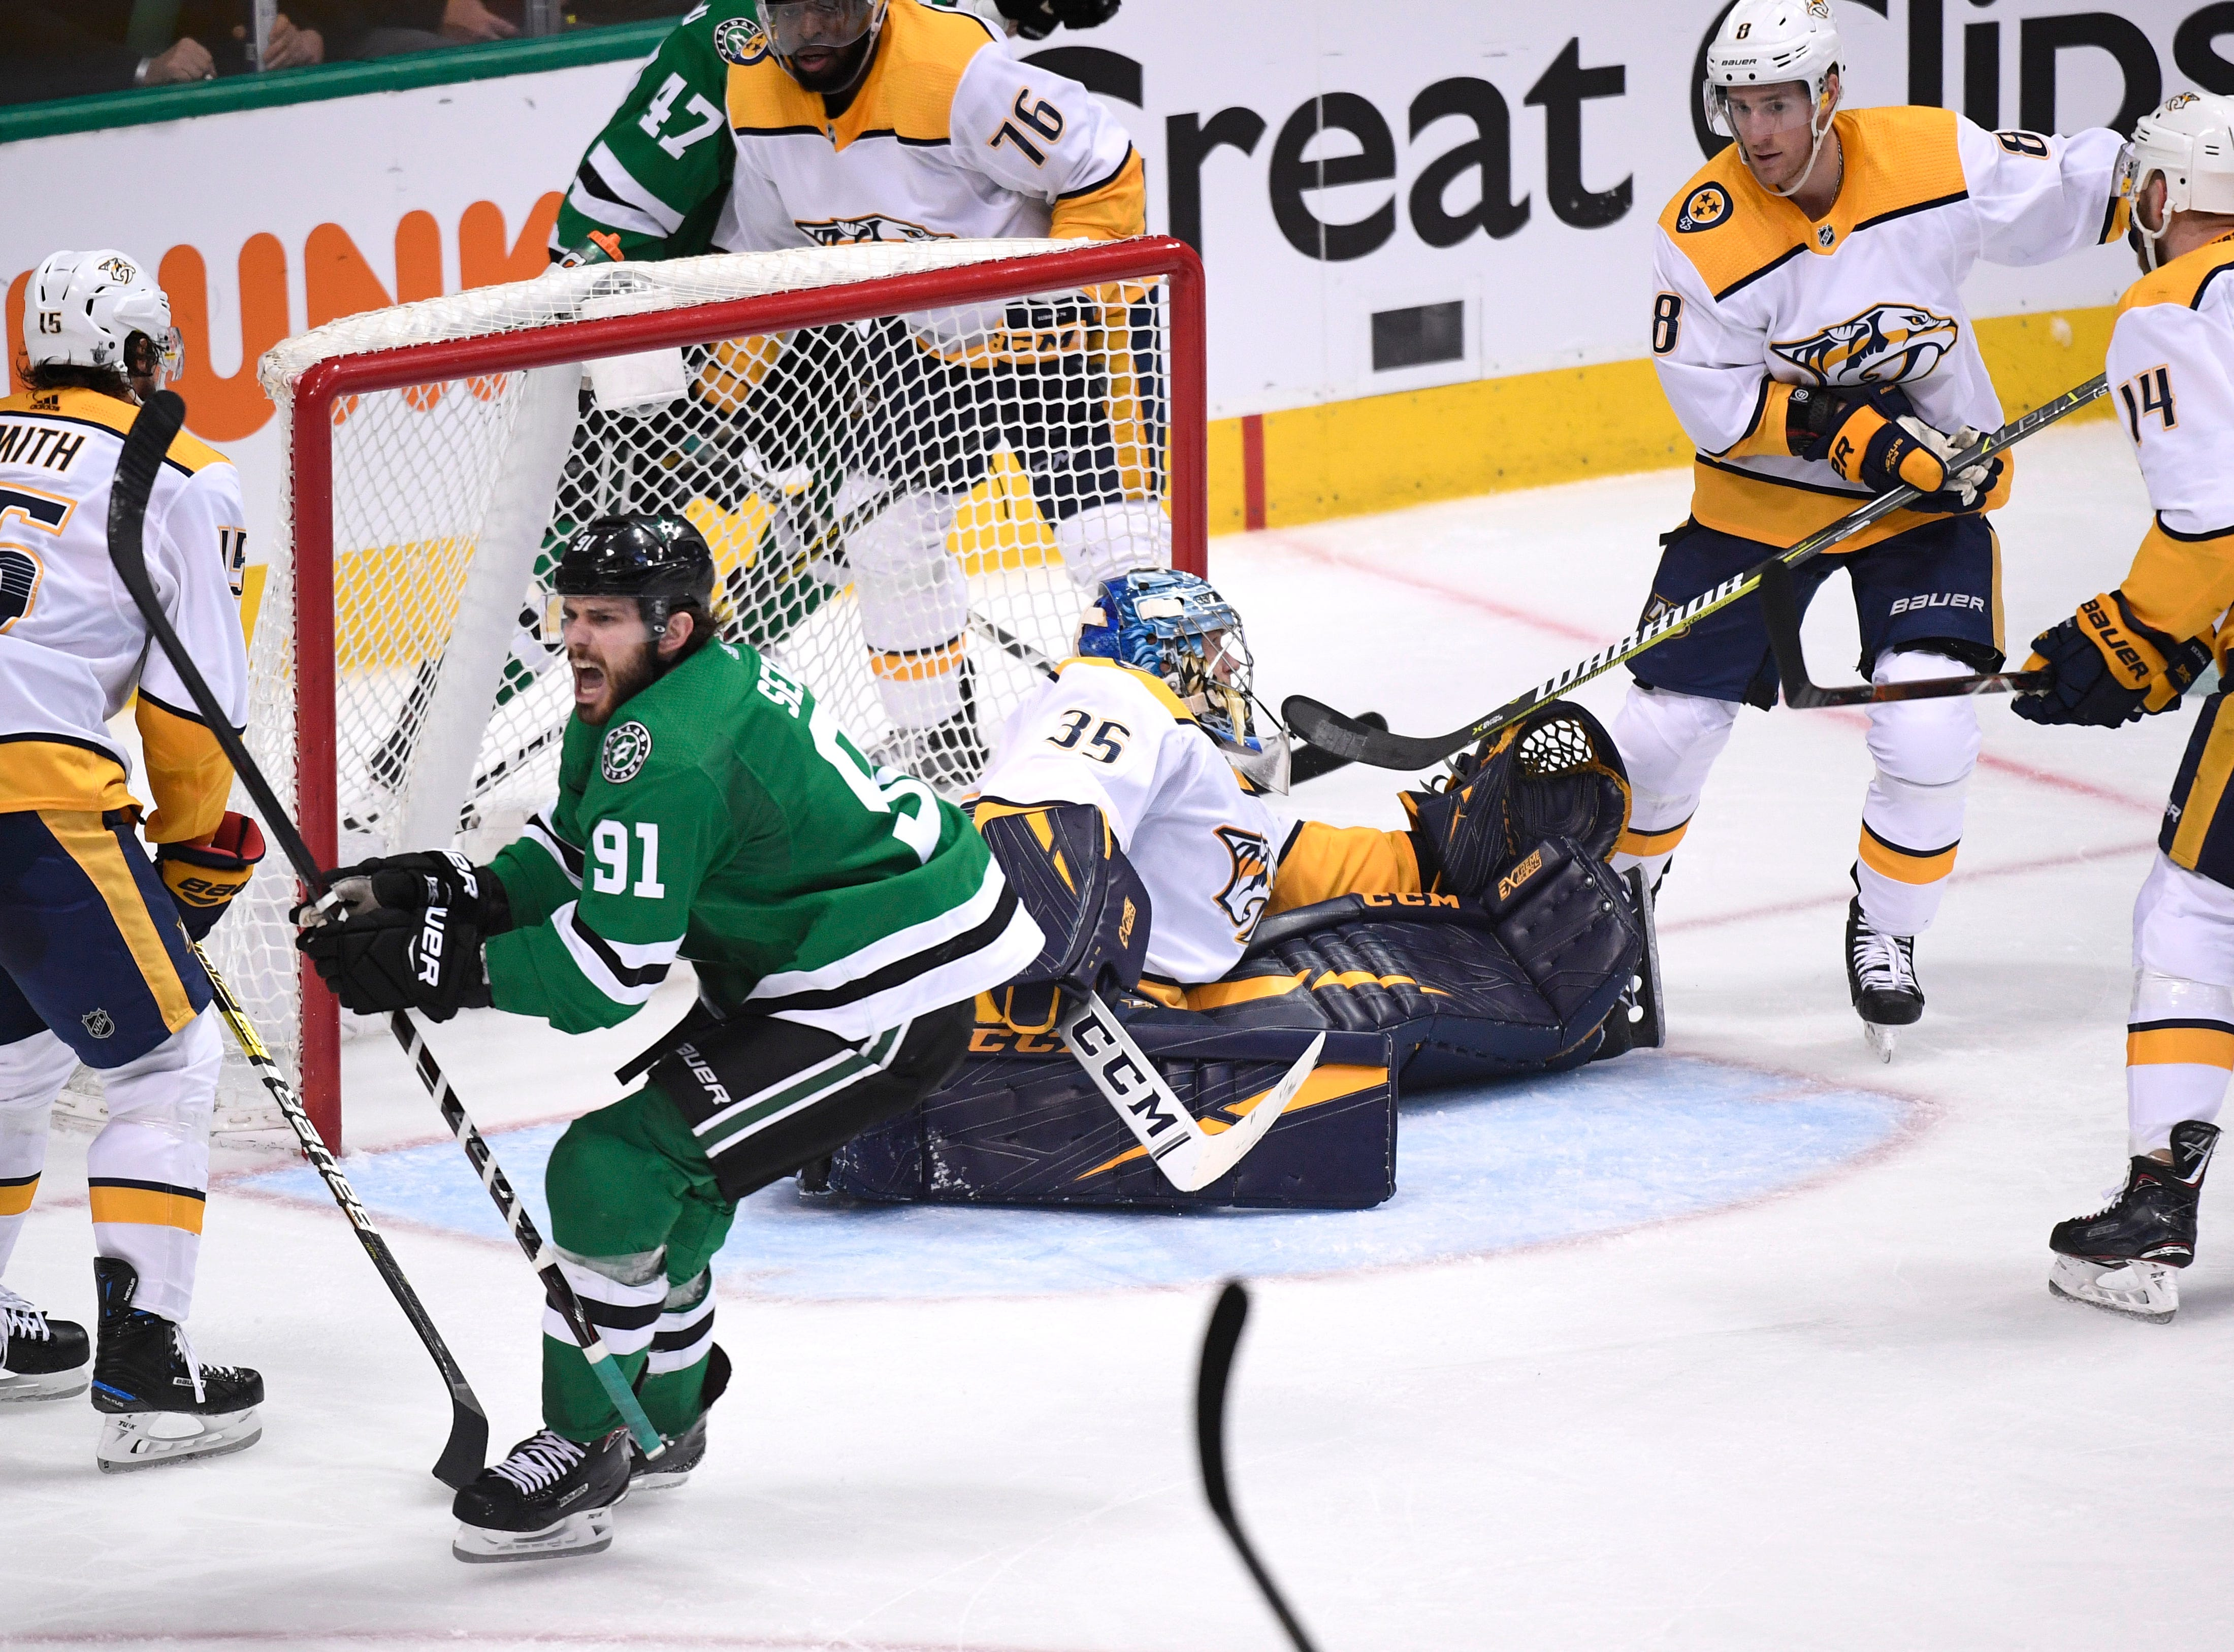 Dallas Stars center Tyler Seguin (91) celebrates his goal during the third period of the divisional semifinal game at the American Airlines Center in Dallas, Texas., Monday, April 15, 2019.